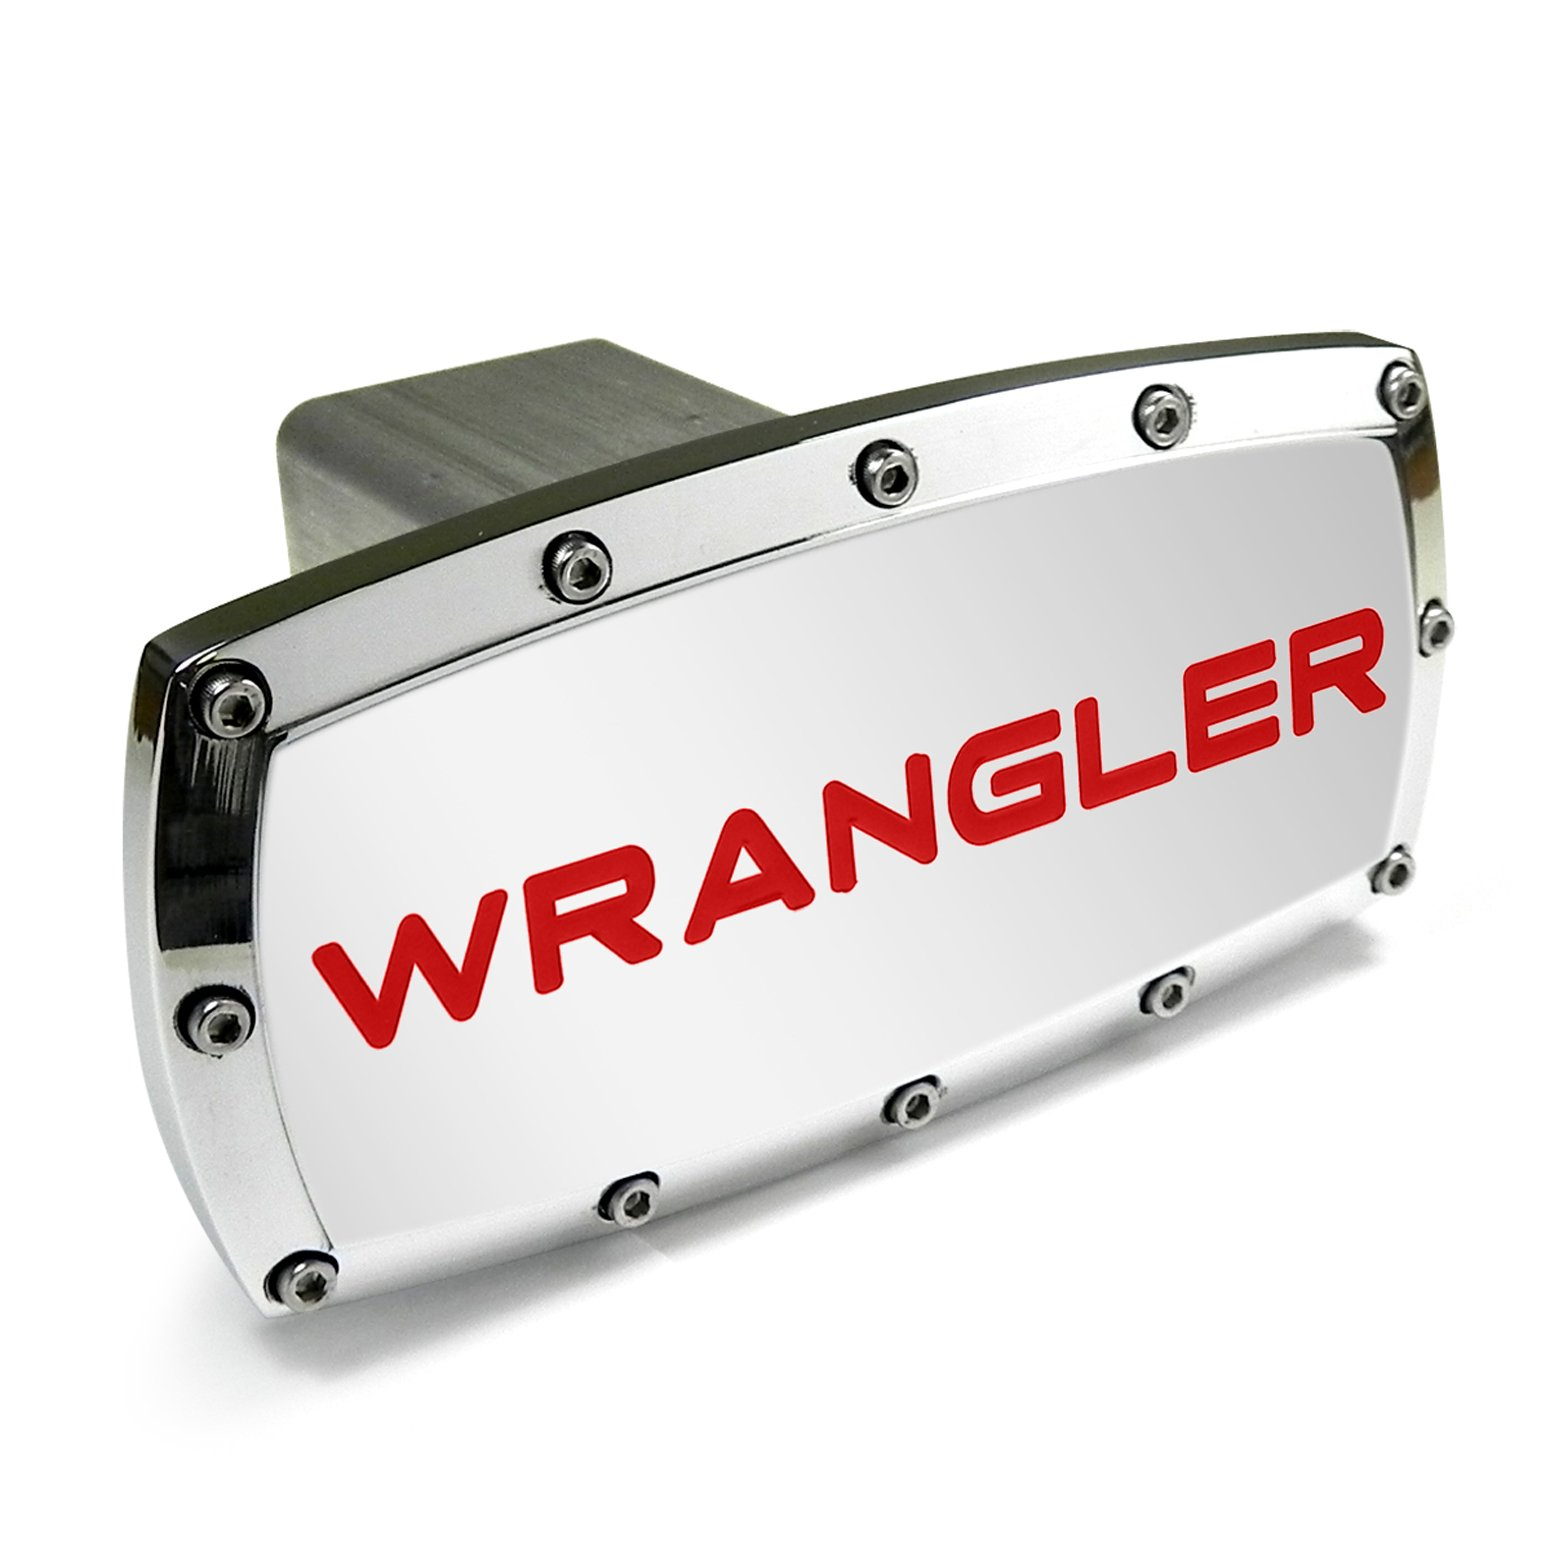 Jeep Wrangler Red Engraved Billet Aluminum Chrome Tow Hitch Cover by Jeep